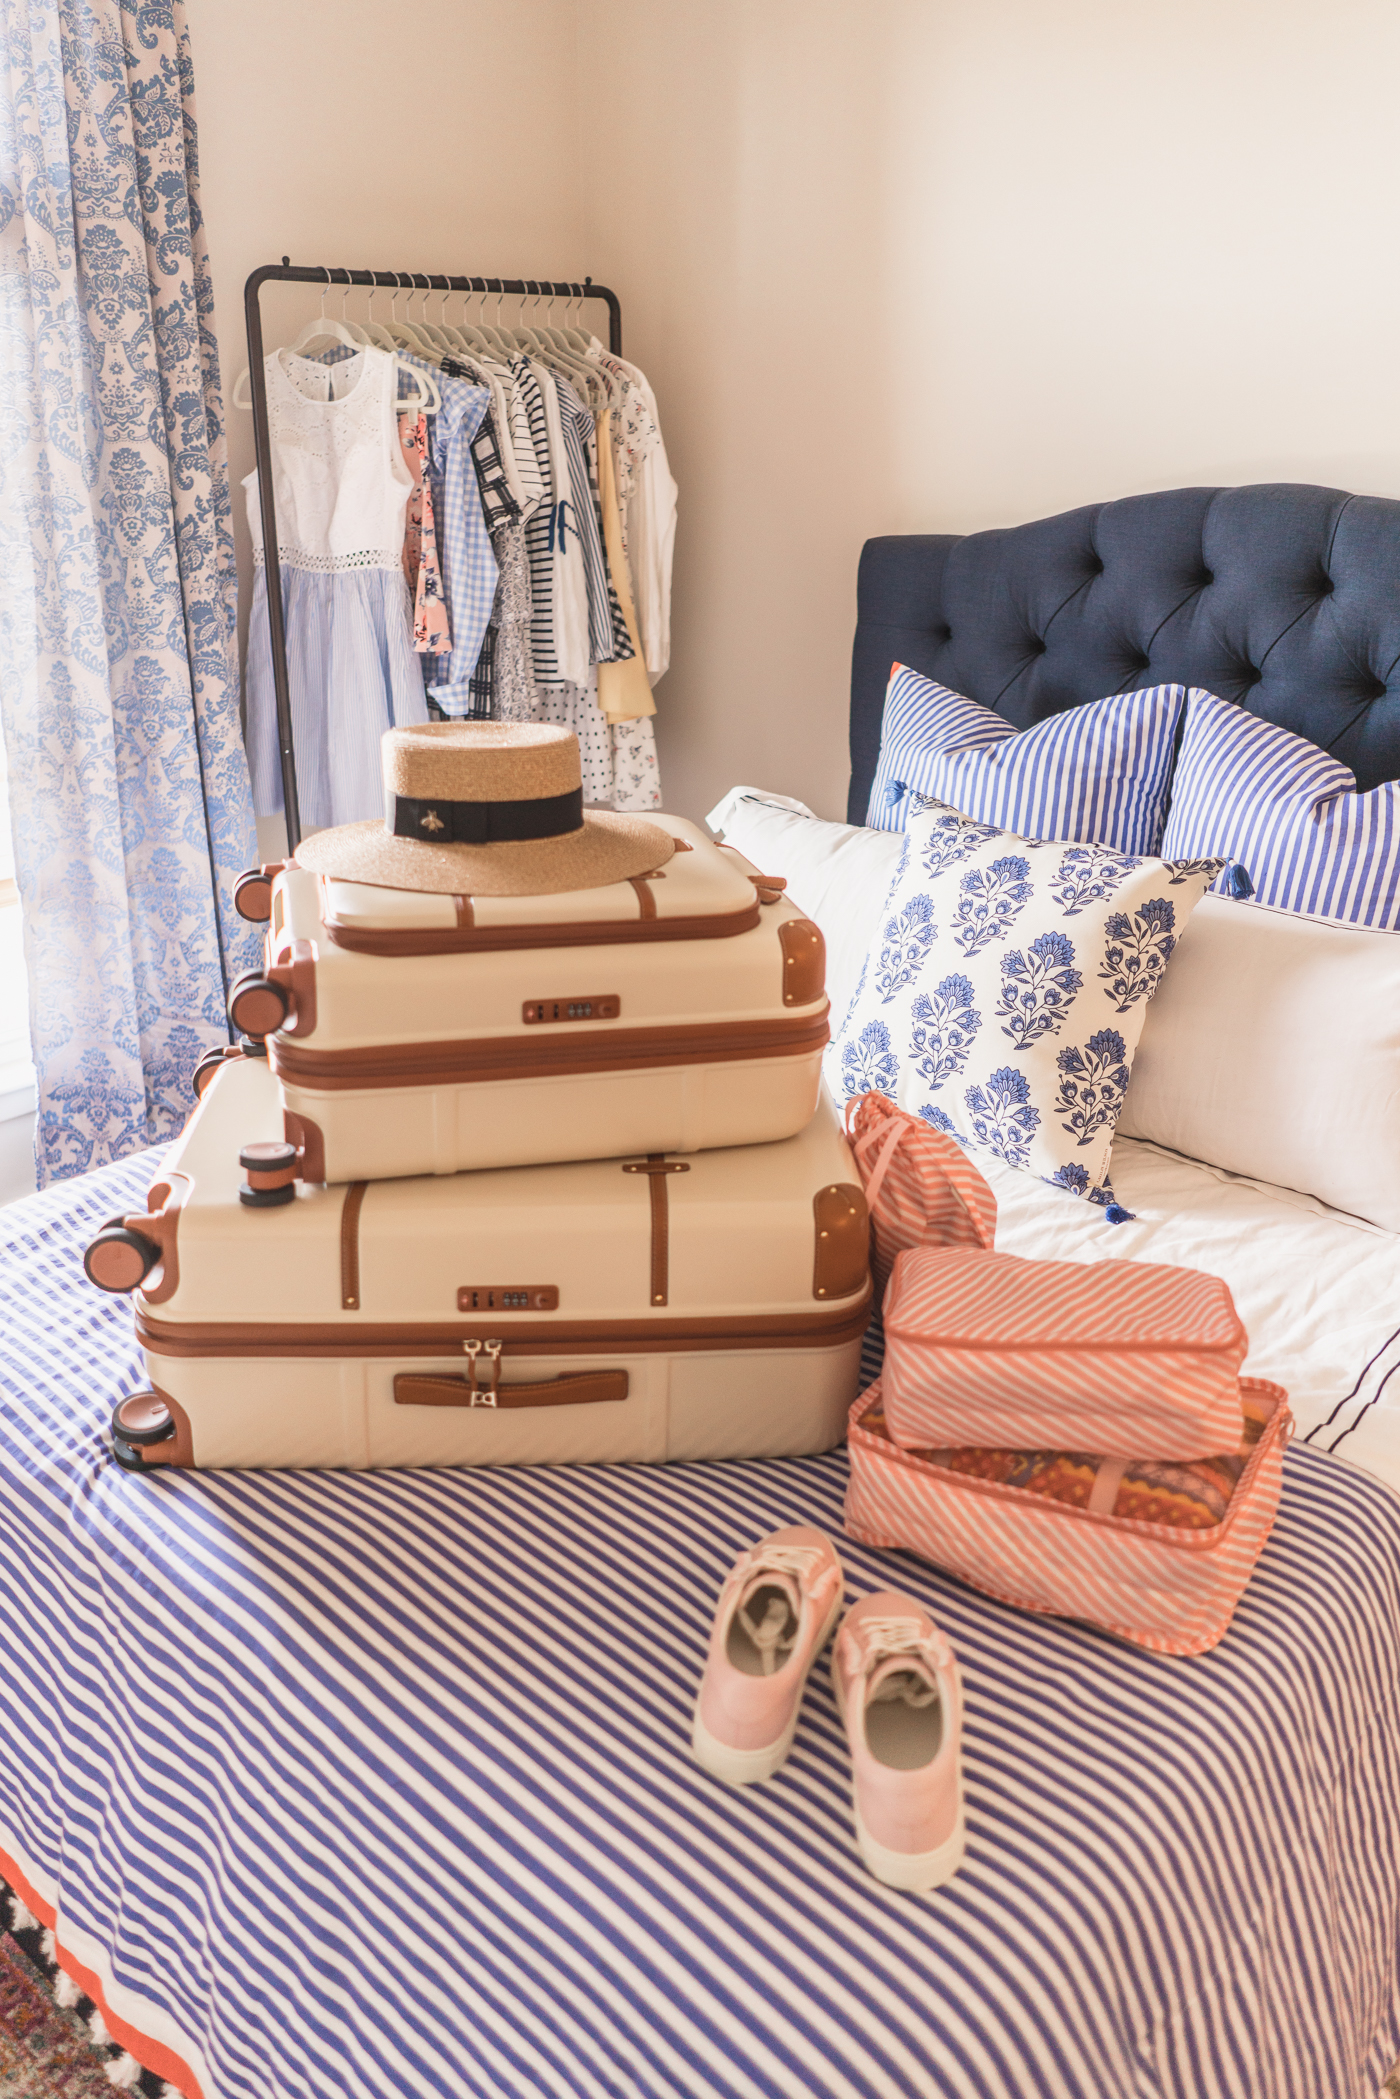 How to Pack for an Extended or Overseas Trip